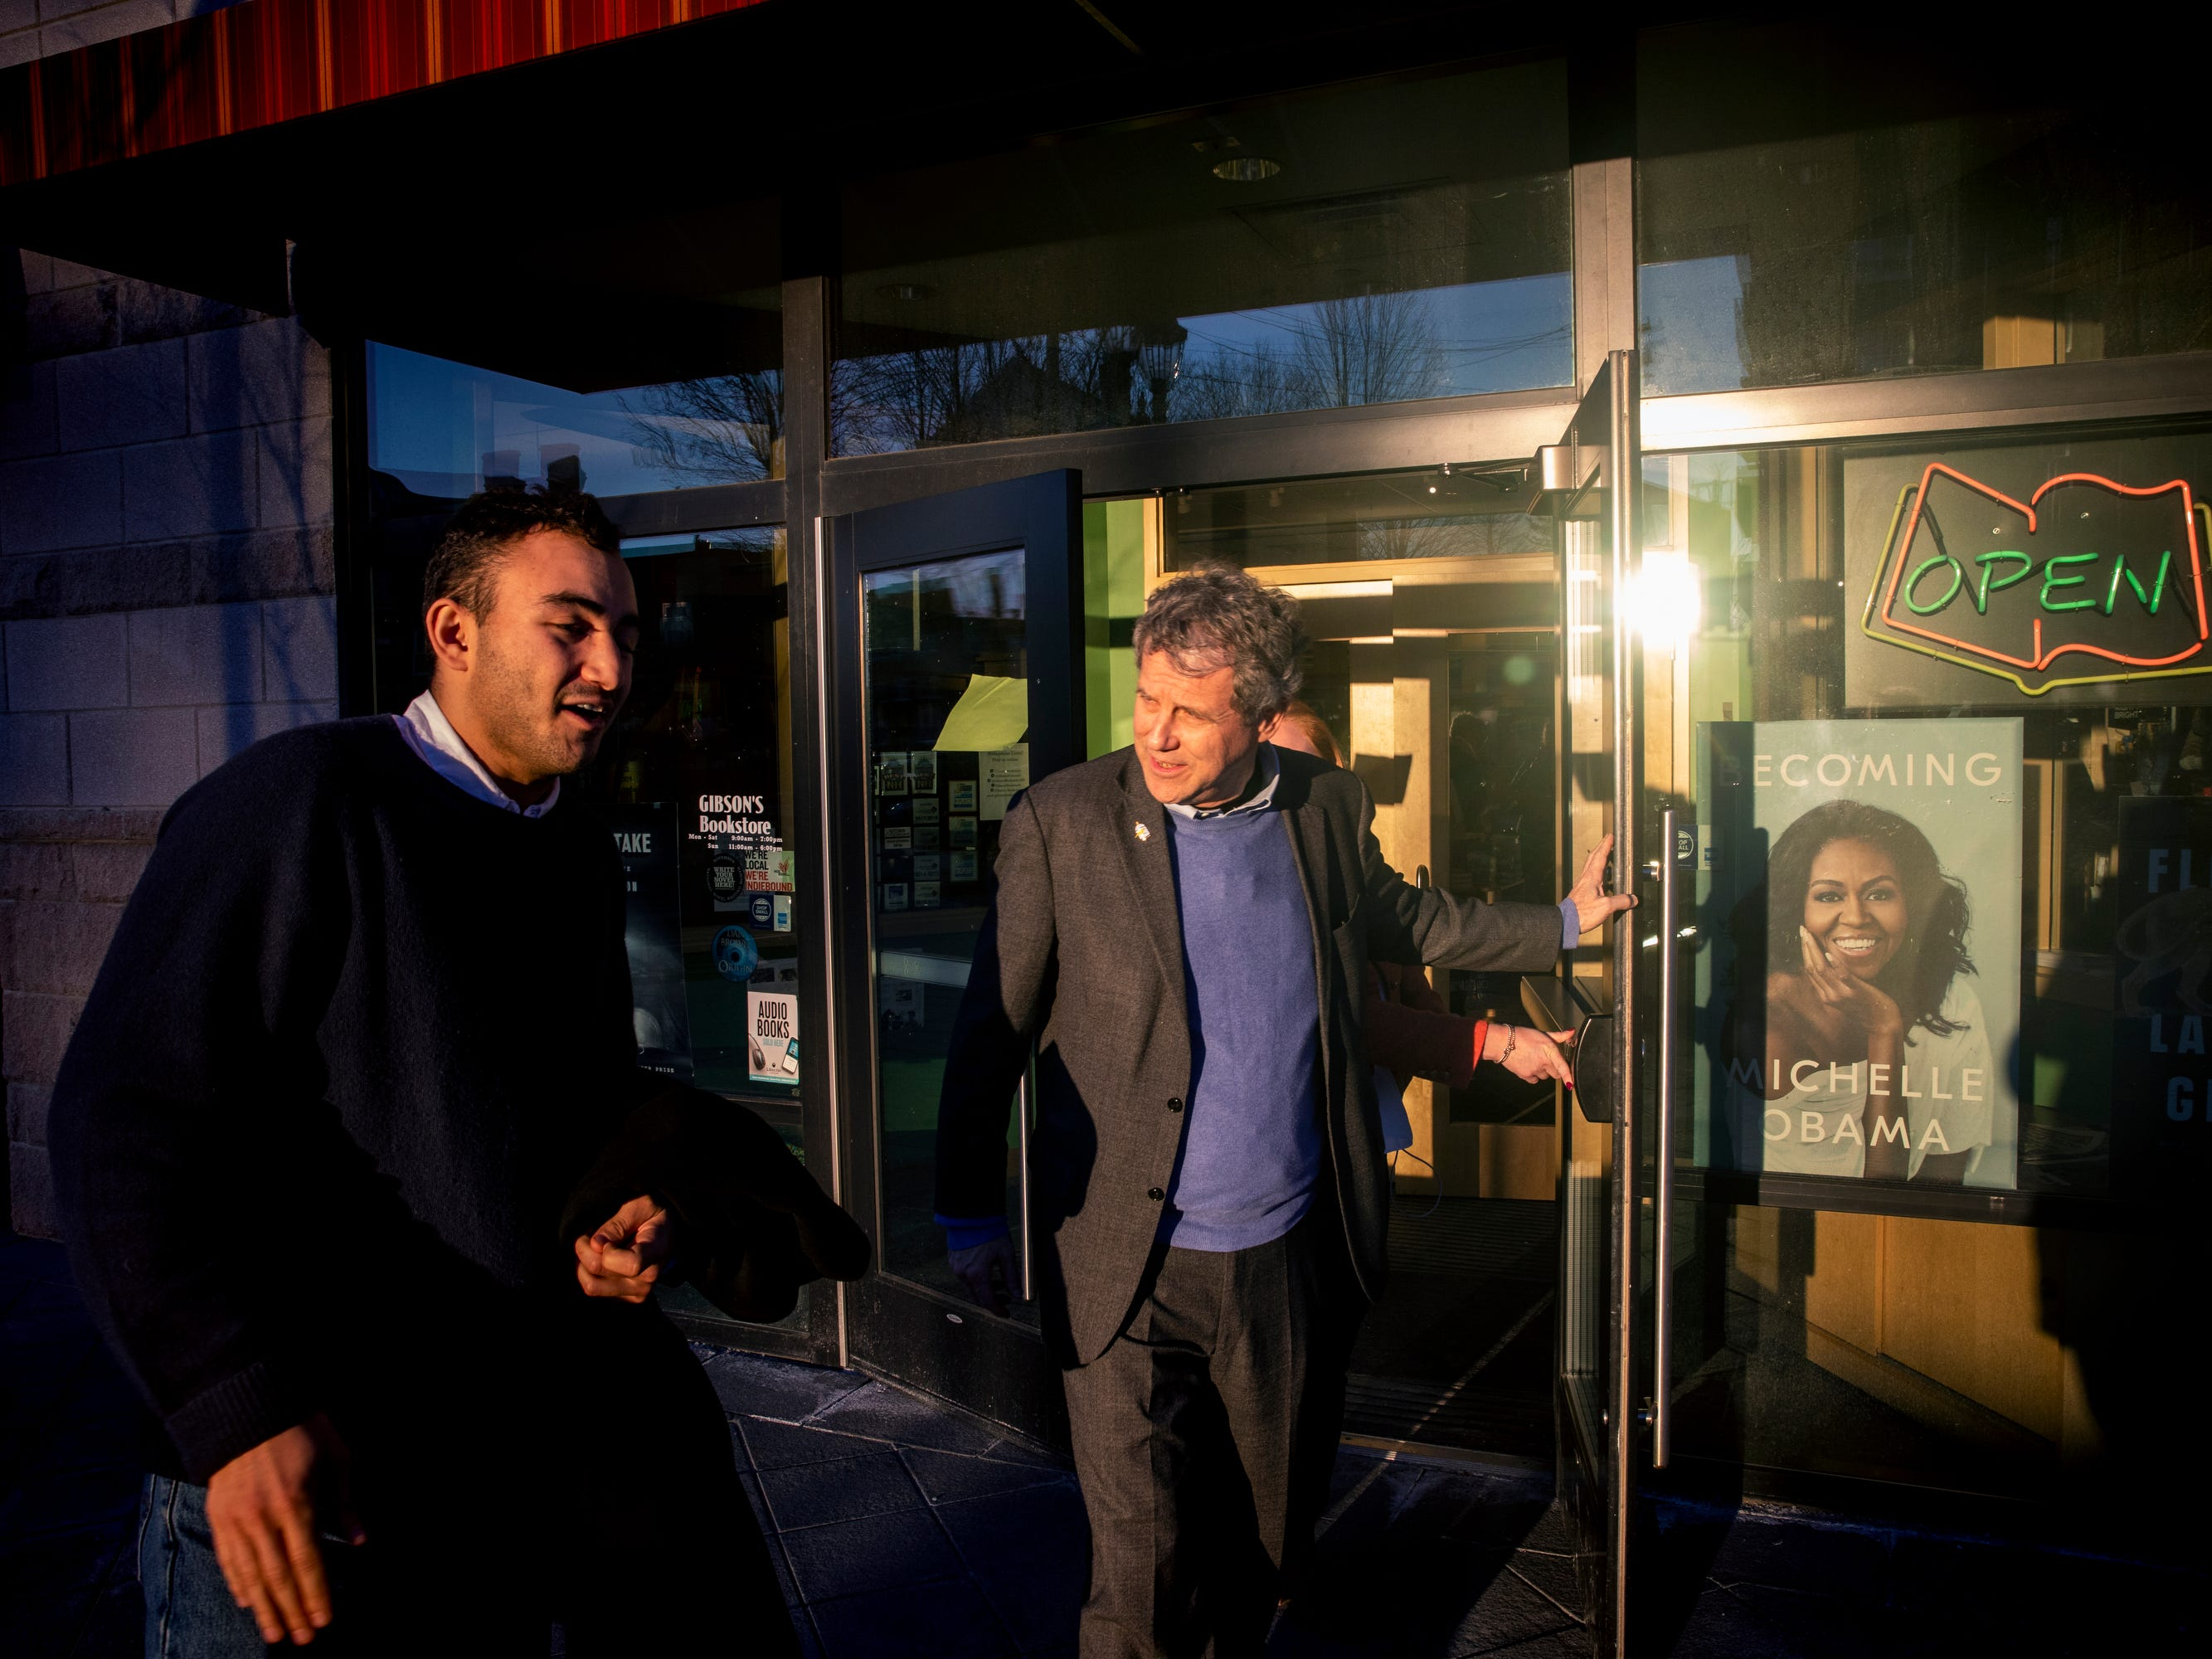 Senator Sherrod Brown leaves Gibson's Bookstore in Concord, N. H. after speaking to a large crowd Saturday, February 9, 2019.